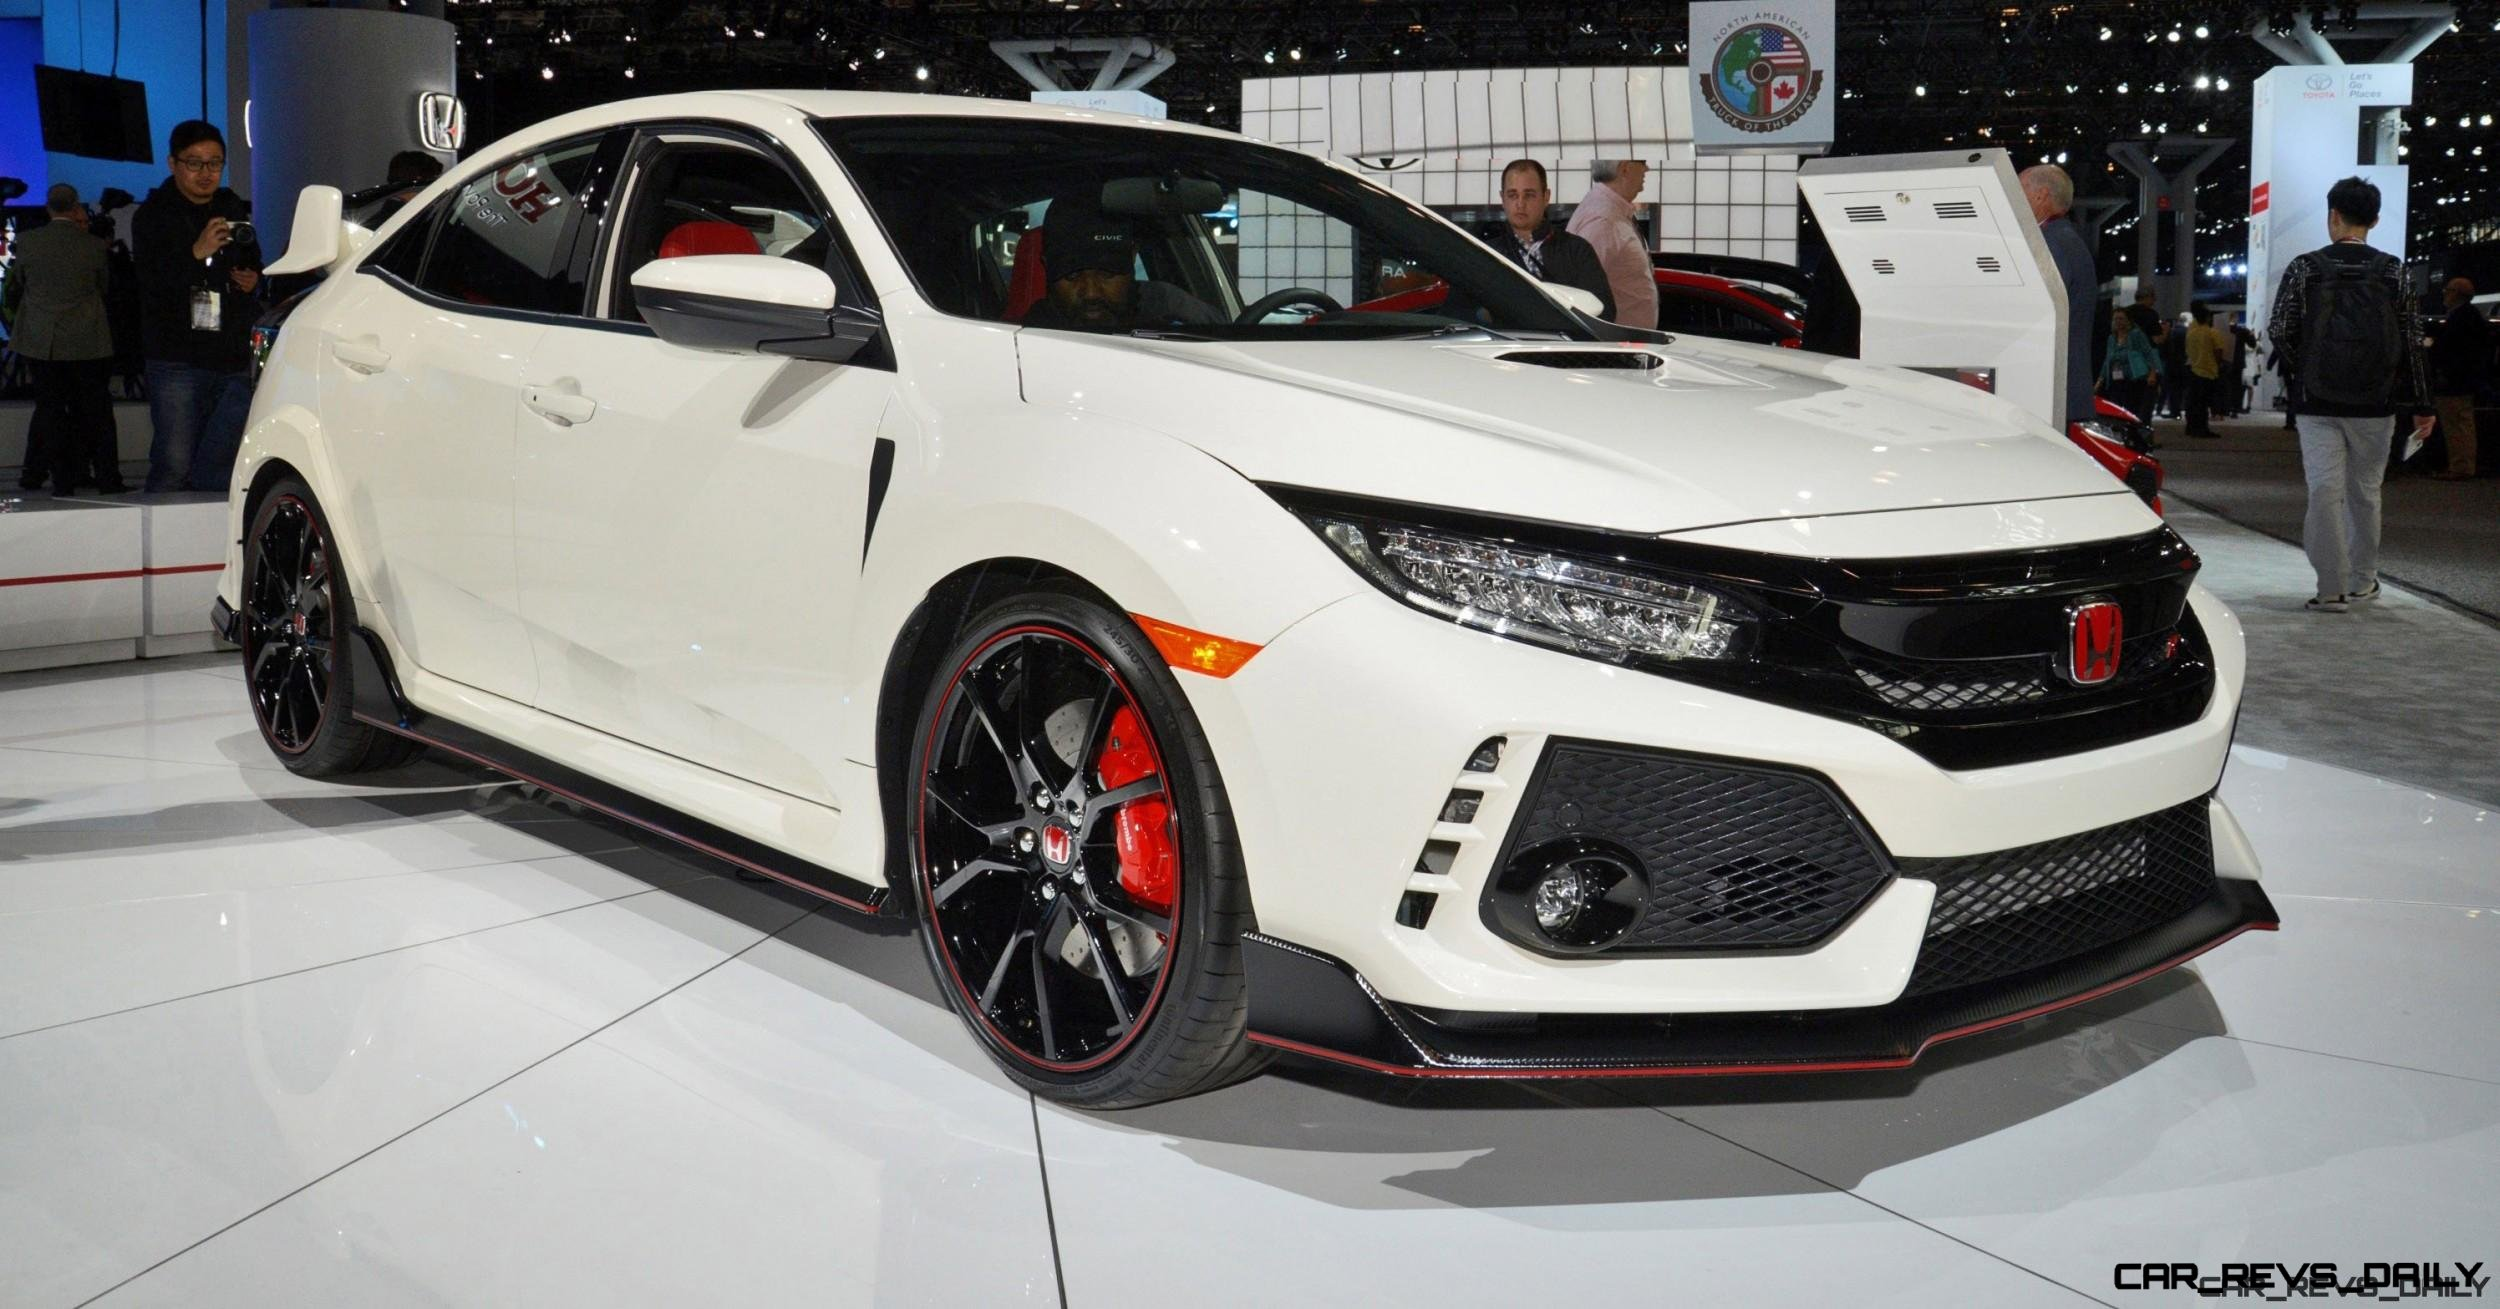 2017 honda civic type r 20 photo usa debut gallery w video best of 2017 awards. Black Bedroom Furniture Sets. Home Design Ideas